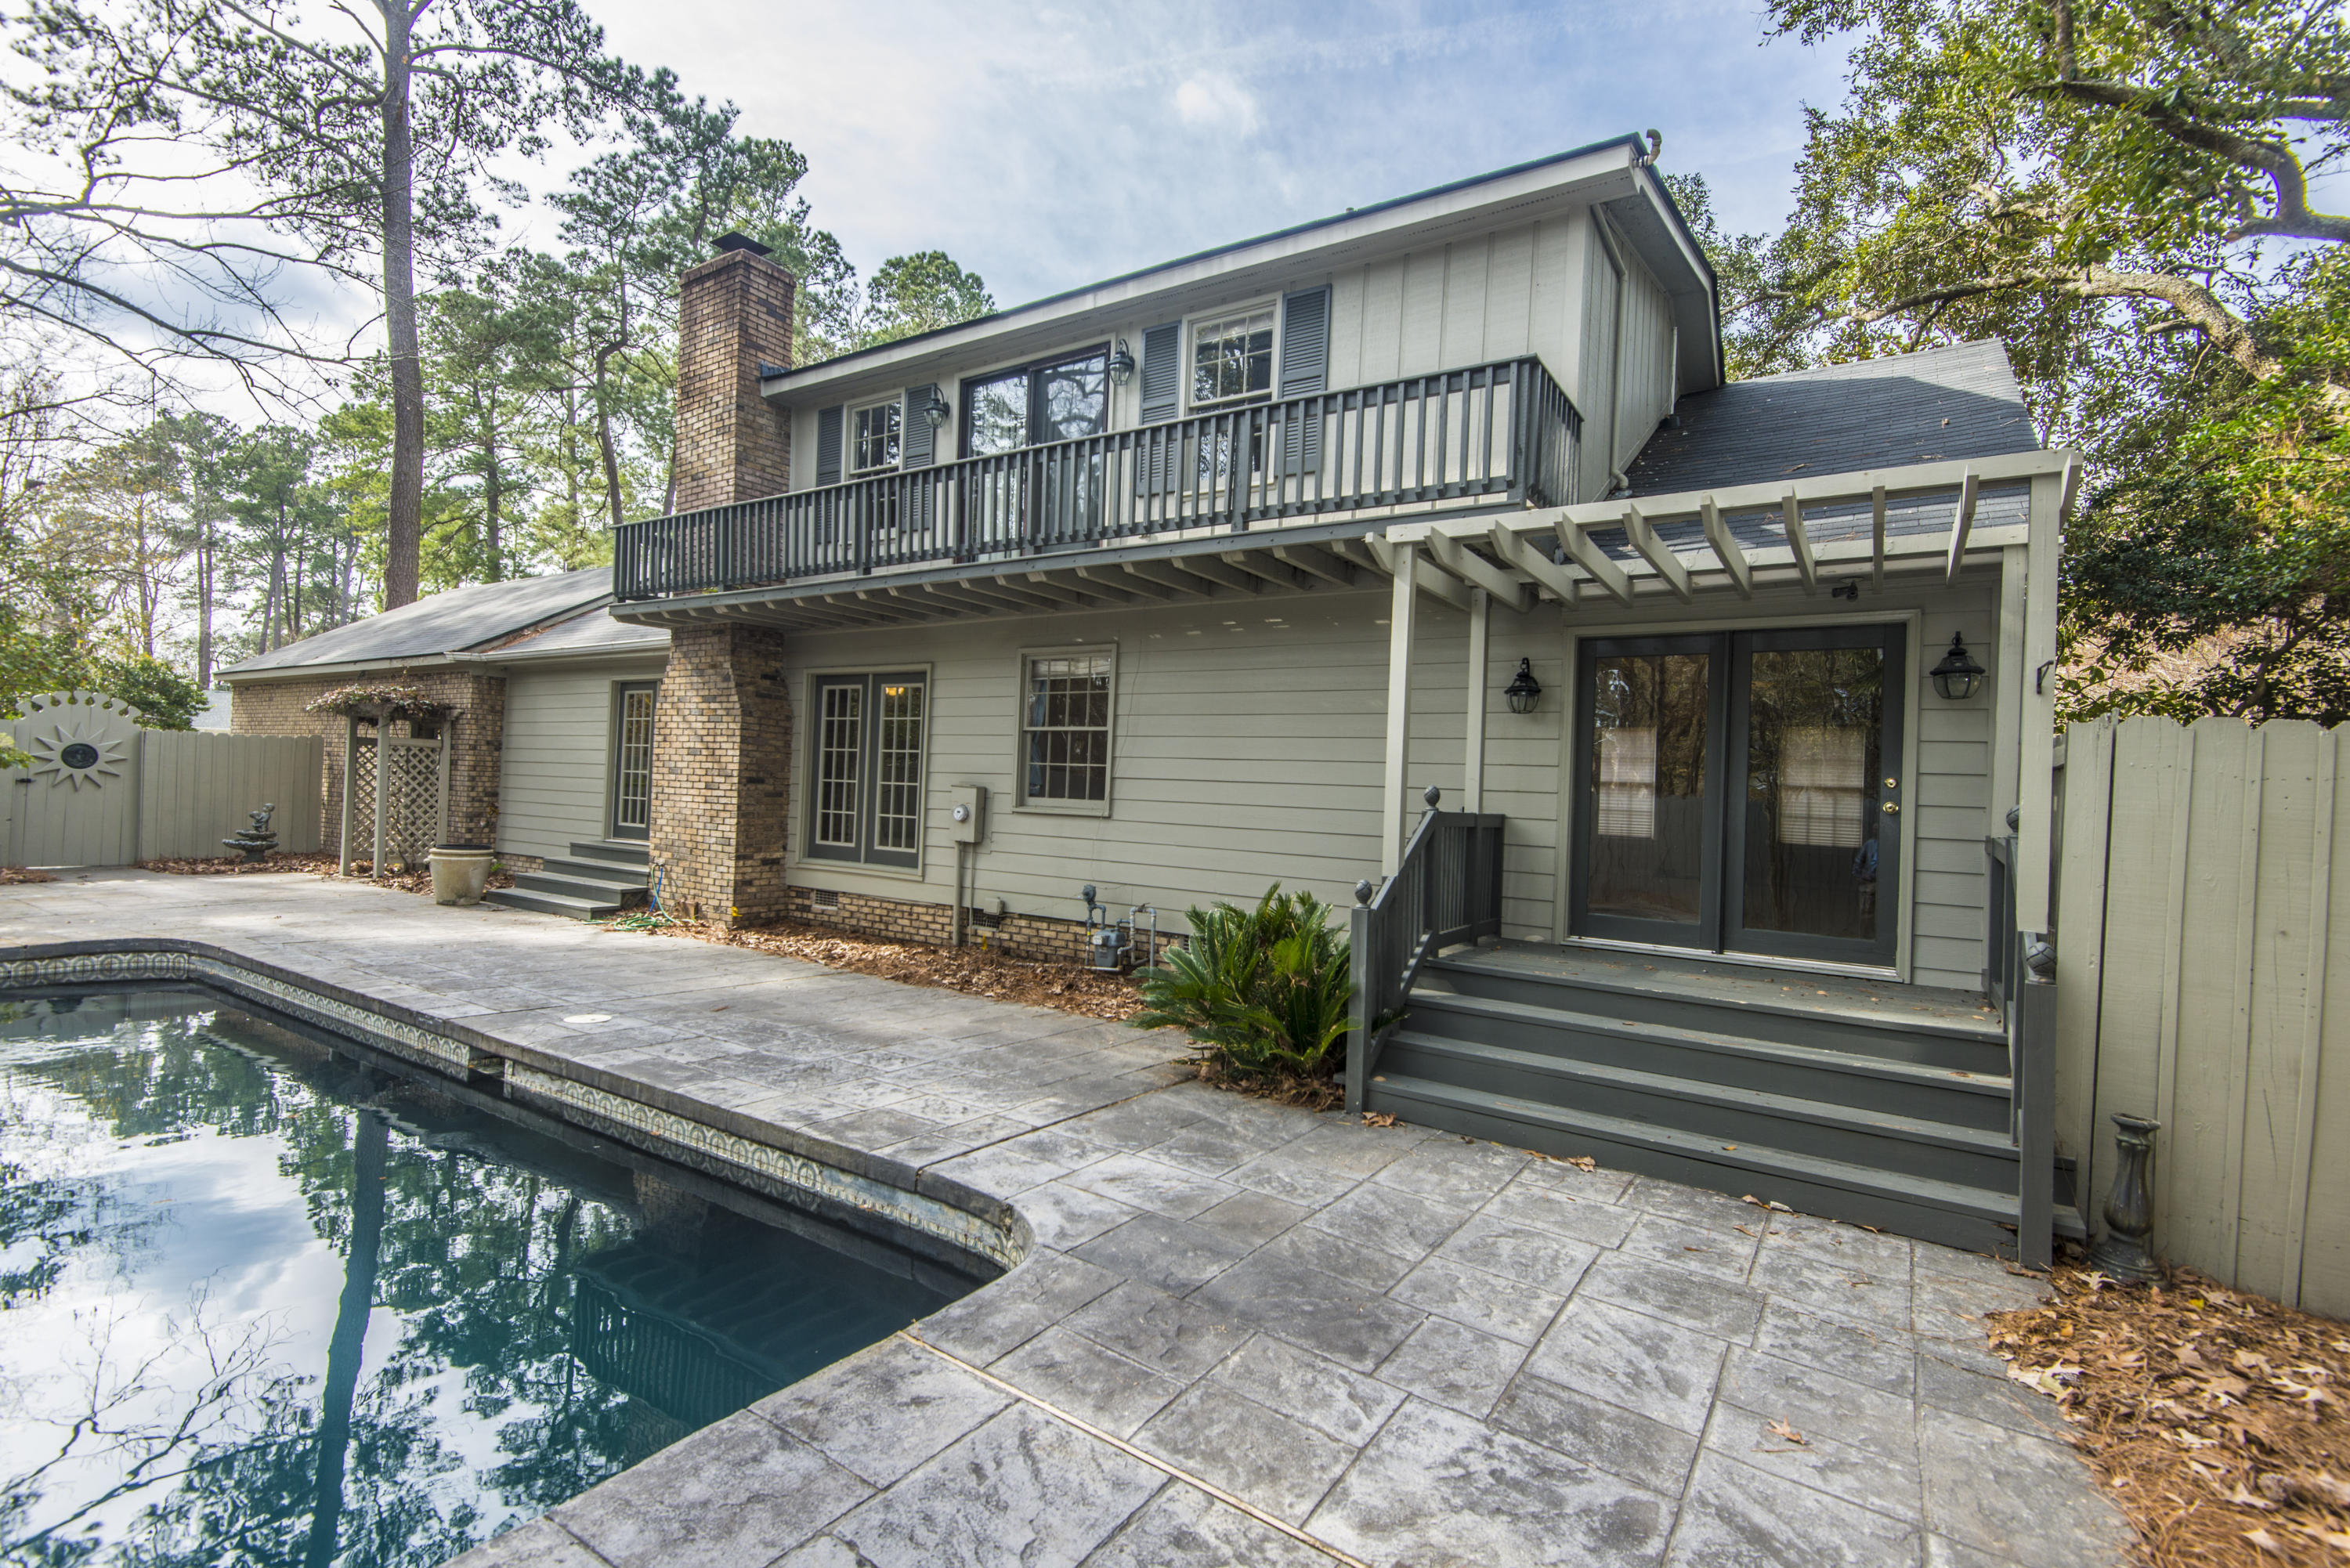 Kings Grant Homes For Sale - 102 Candlewood, Summerville, SC - 6